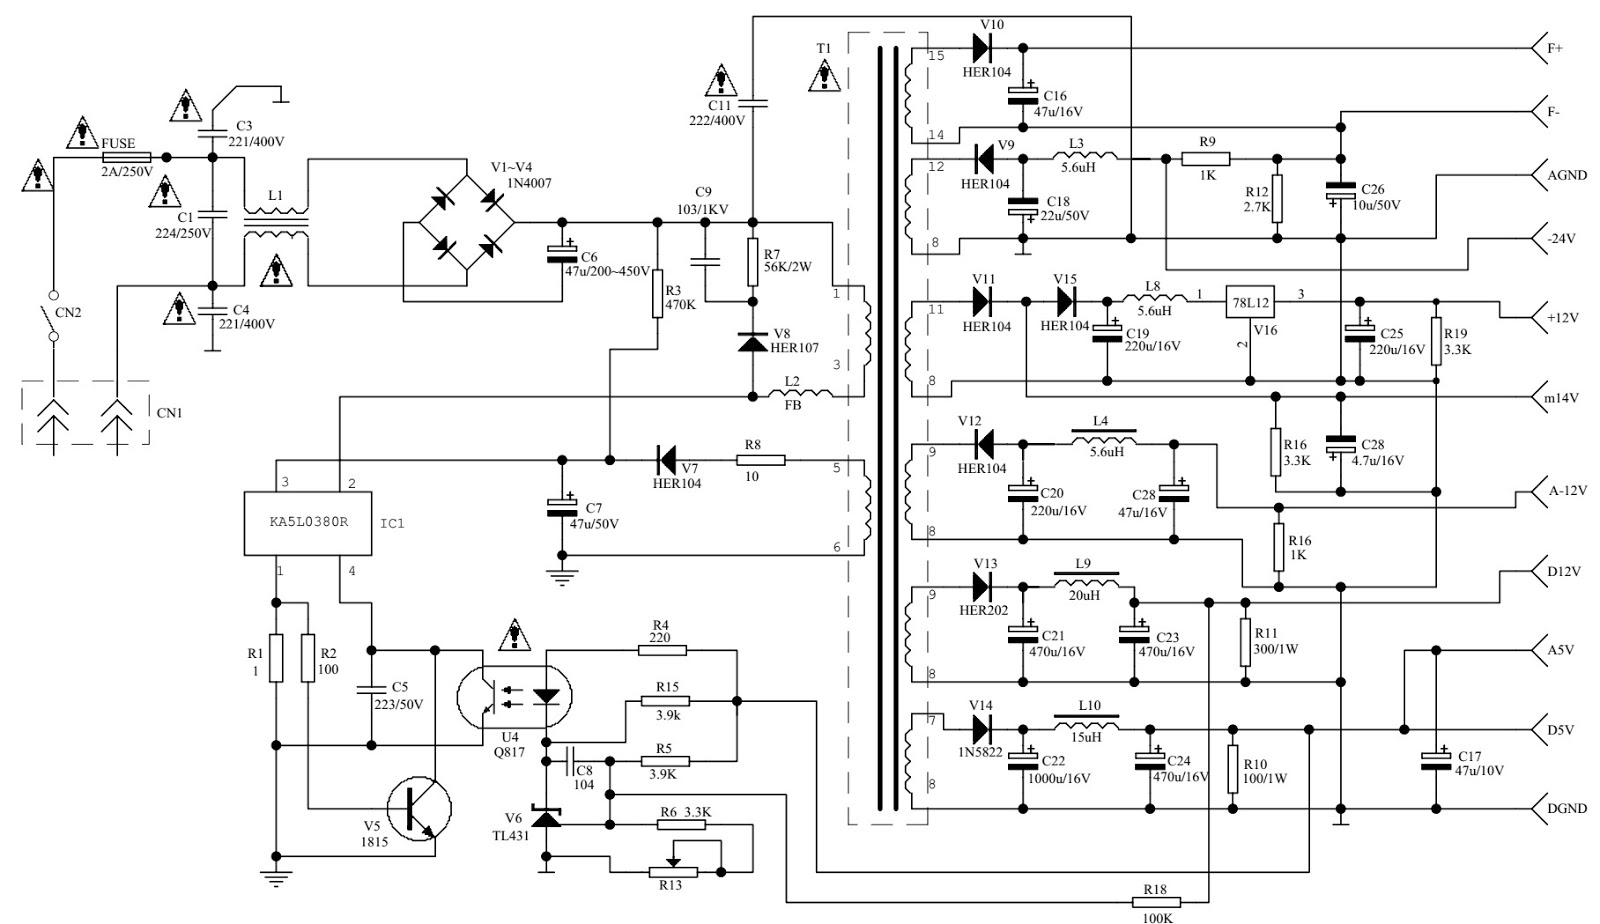 circuit diagram of home theater two way wiring for light switch akai htc s 01t dvd system